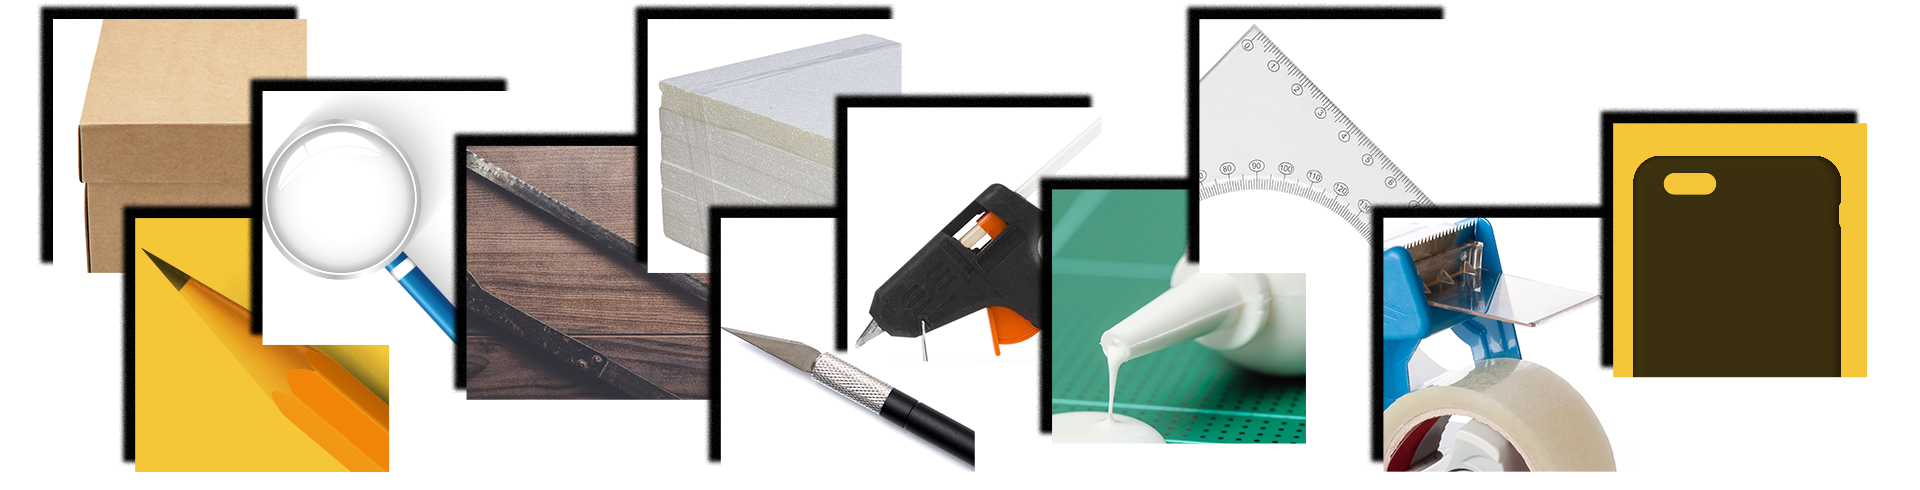 Gather together the following supplies: a shoe box, white glue, a magnifying glass, a hacksaw, a pencil, an X-acto blade, hot glue gun and glue sticks, foam board, an angled ruler, strong double-sided tape, and an inexpensive phone case to fit your phone.